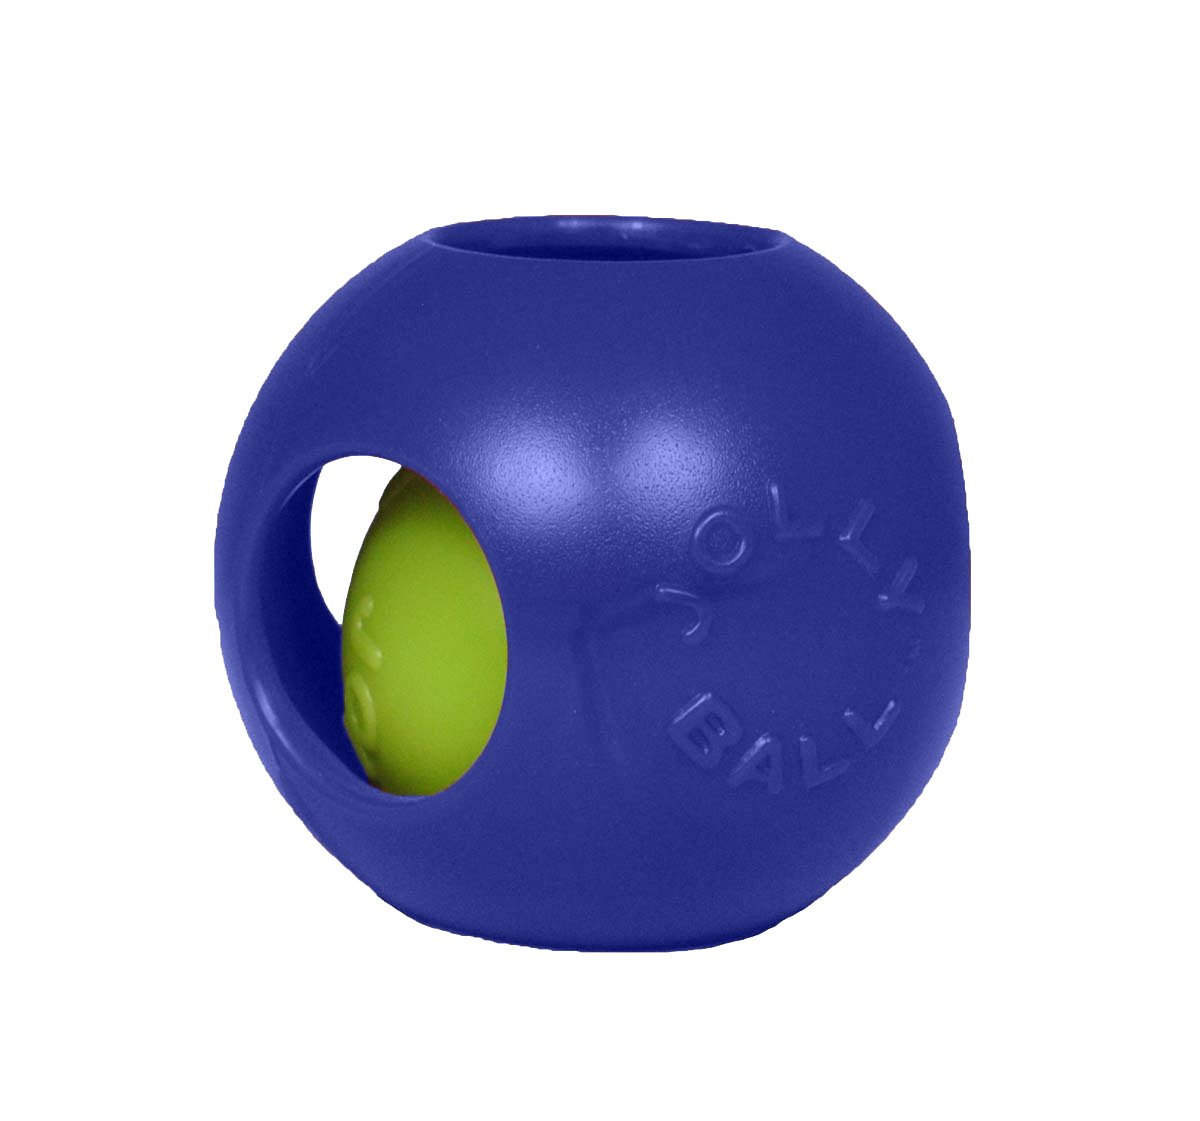 Jolly Pets 8-Inch Teaser Ball, Blue